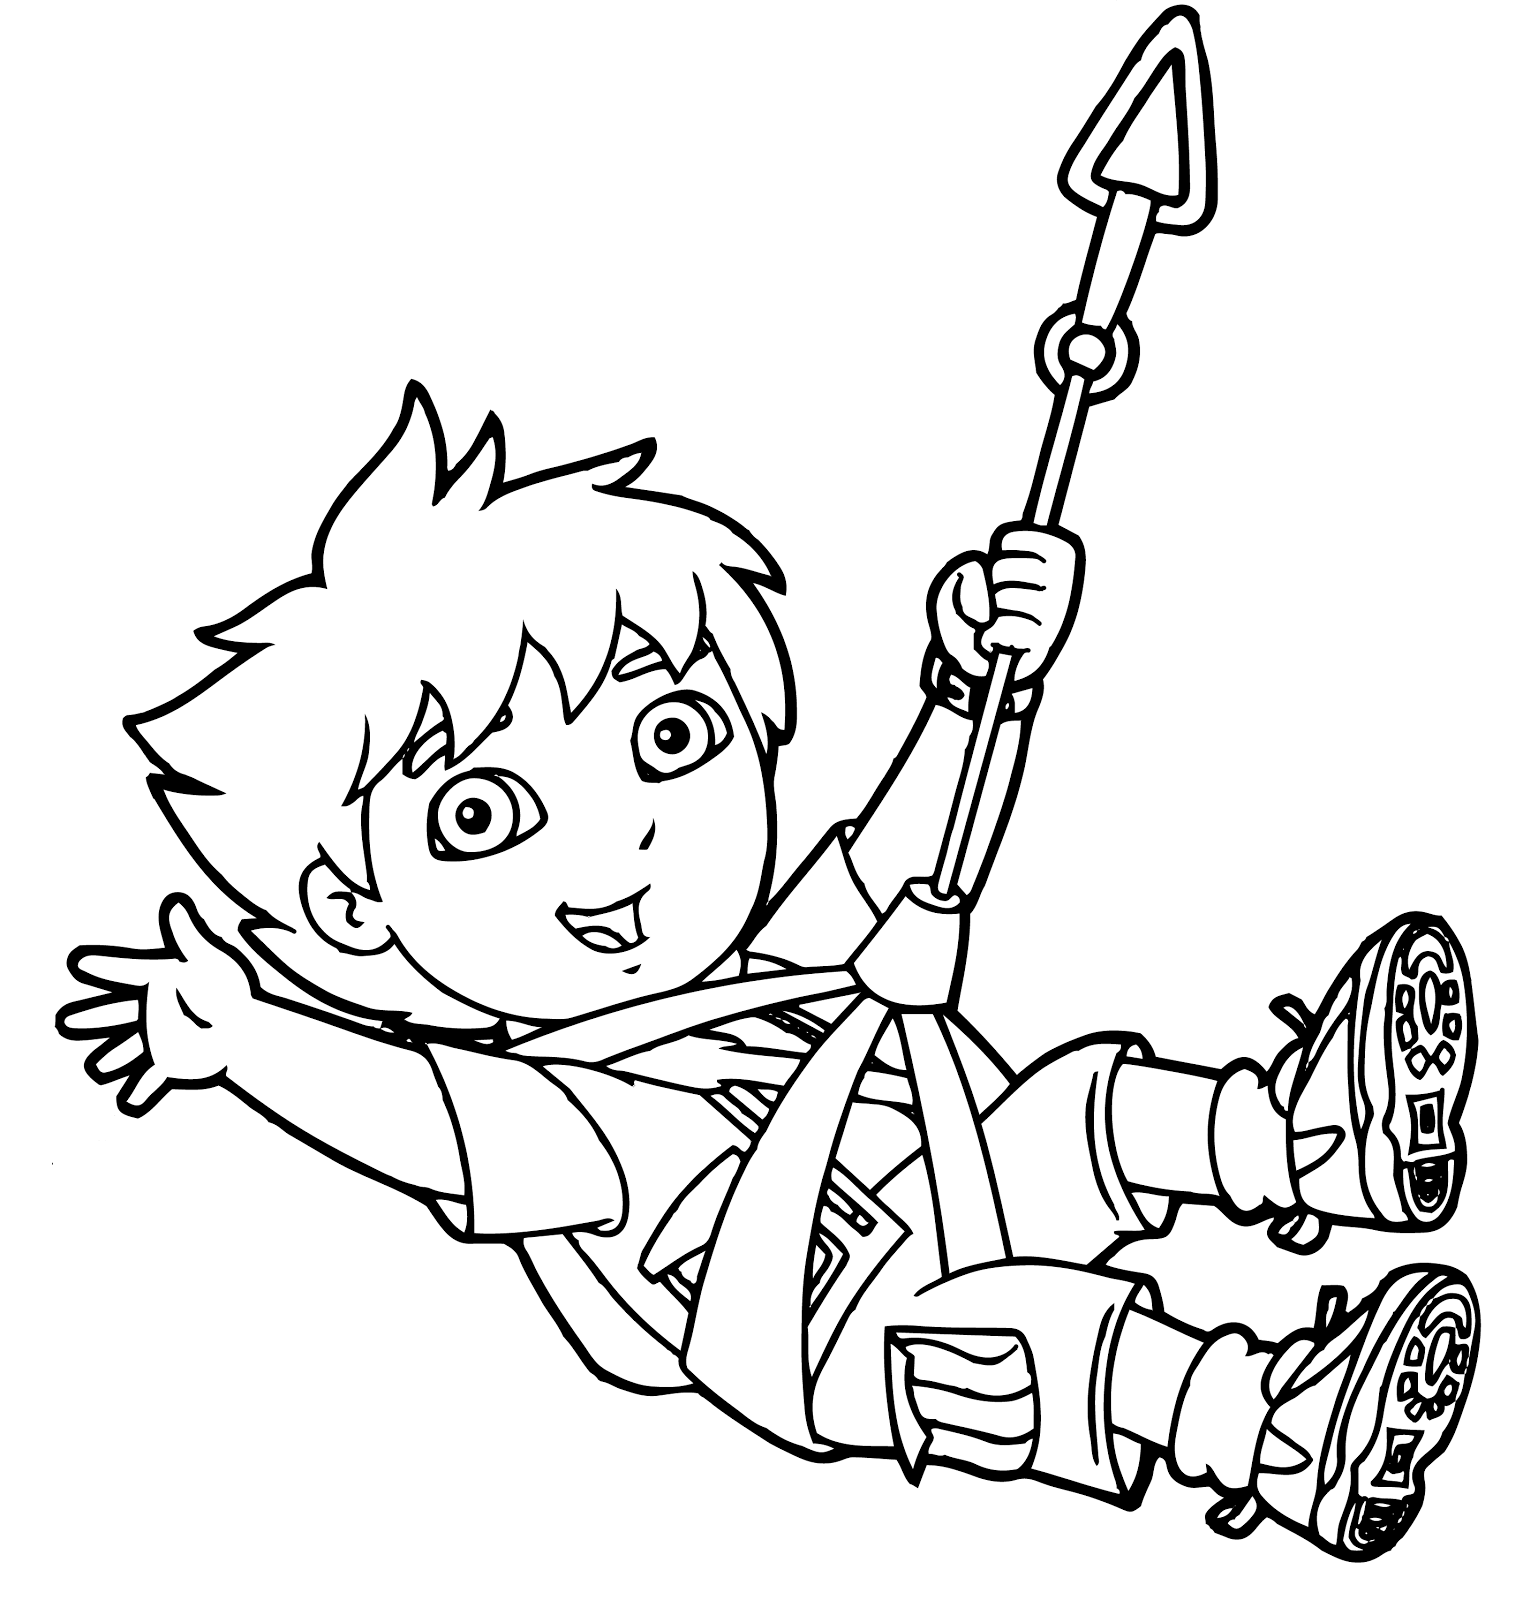 Diego having fun coloring page